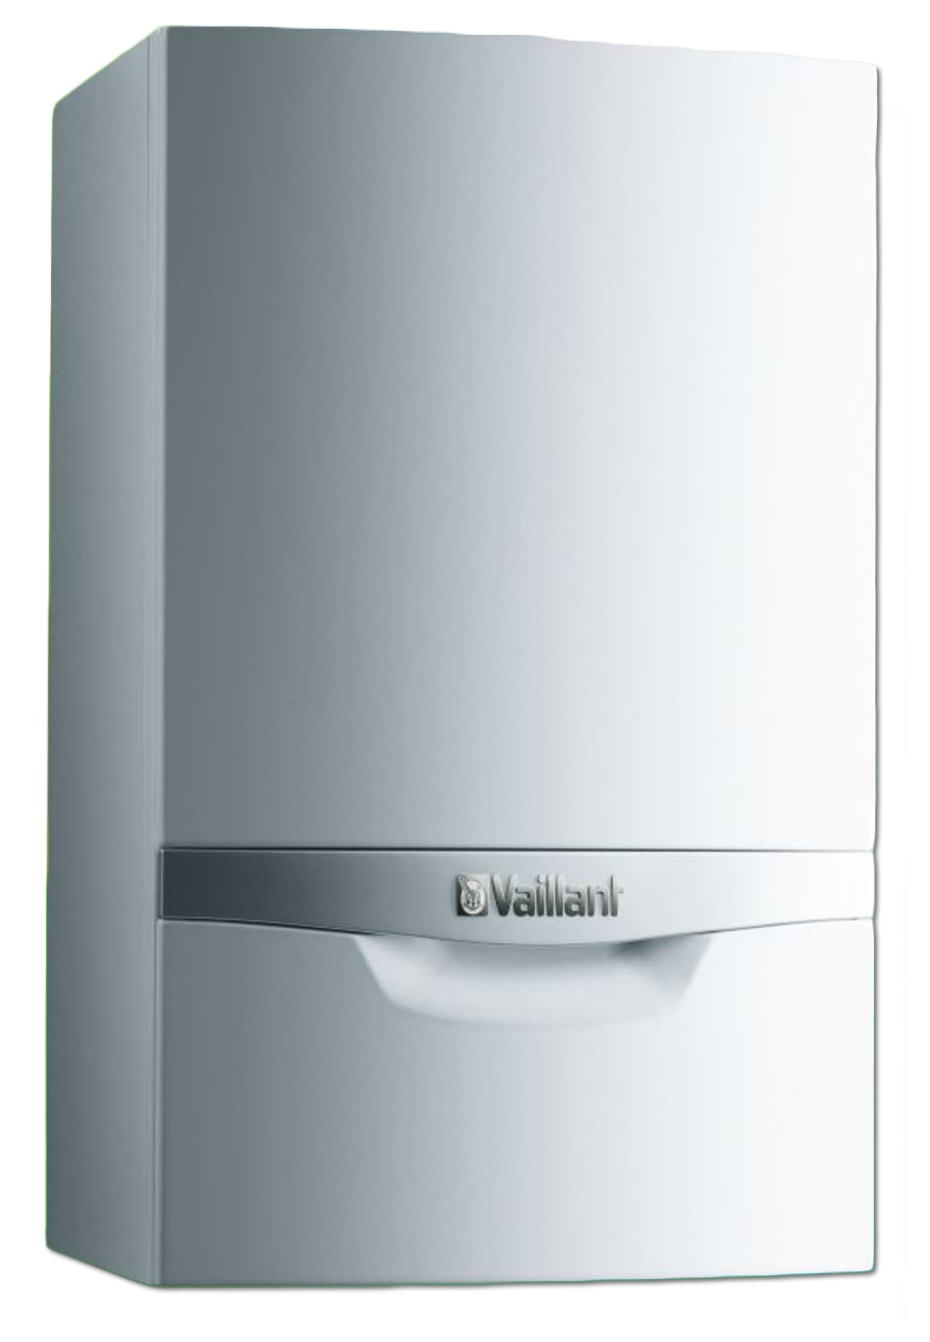 vaillant-ecoplus-cover-image_1